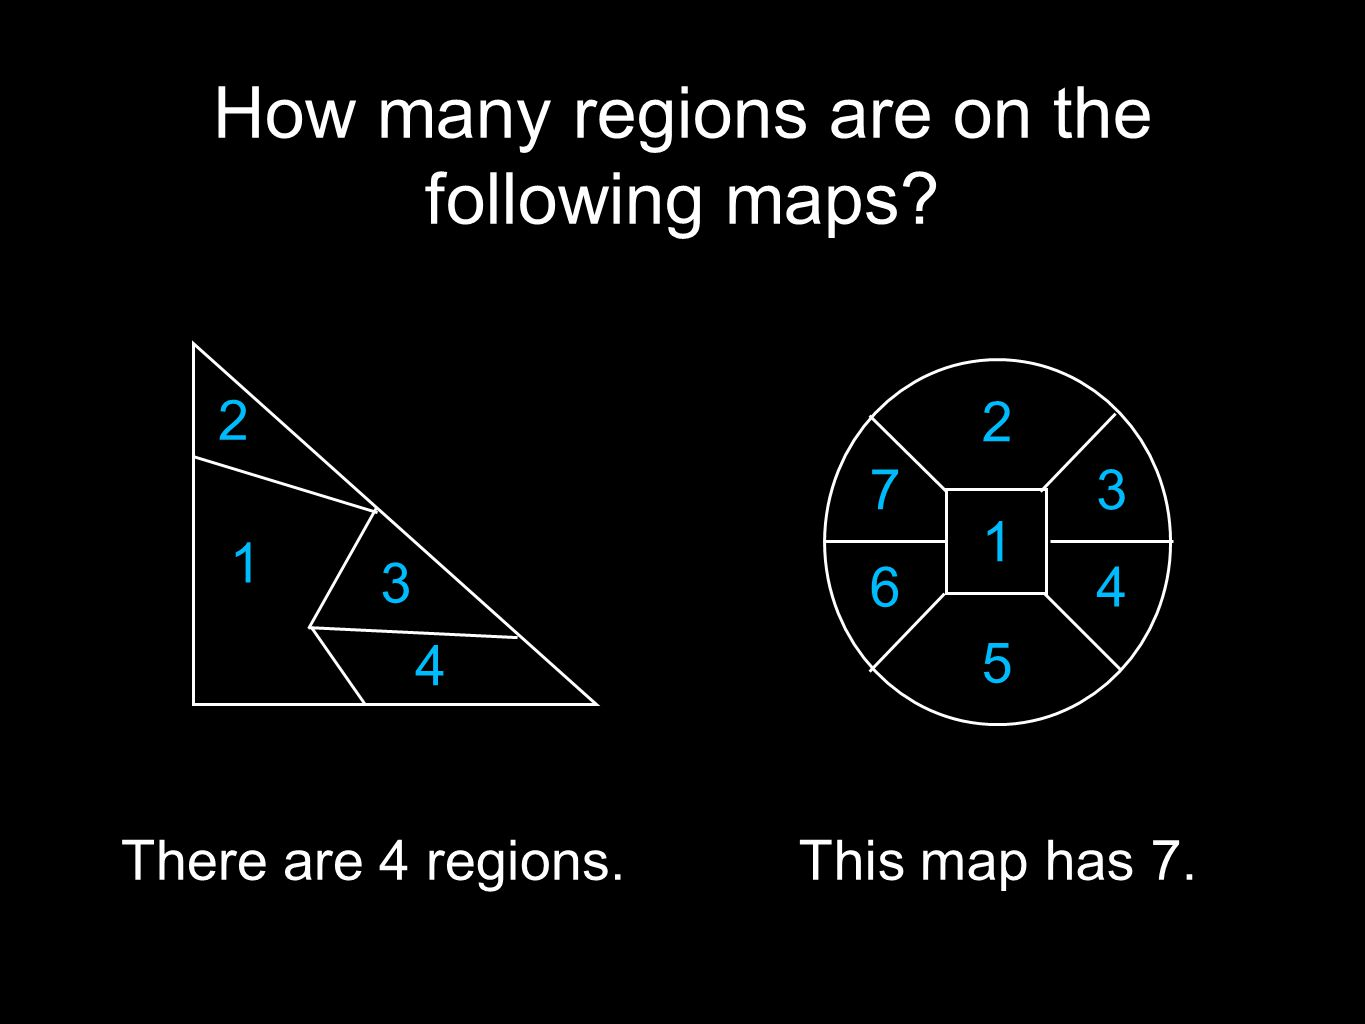 How many regions are on the following maps